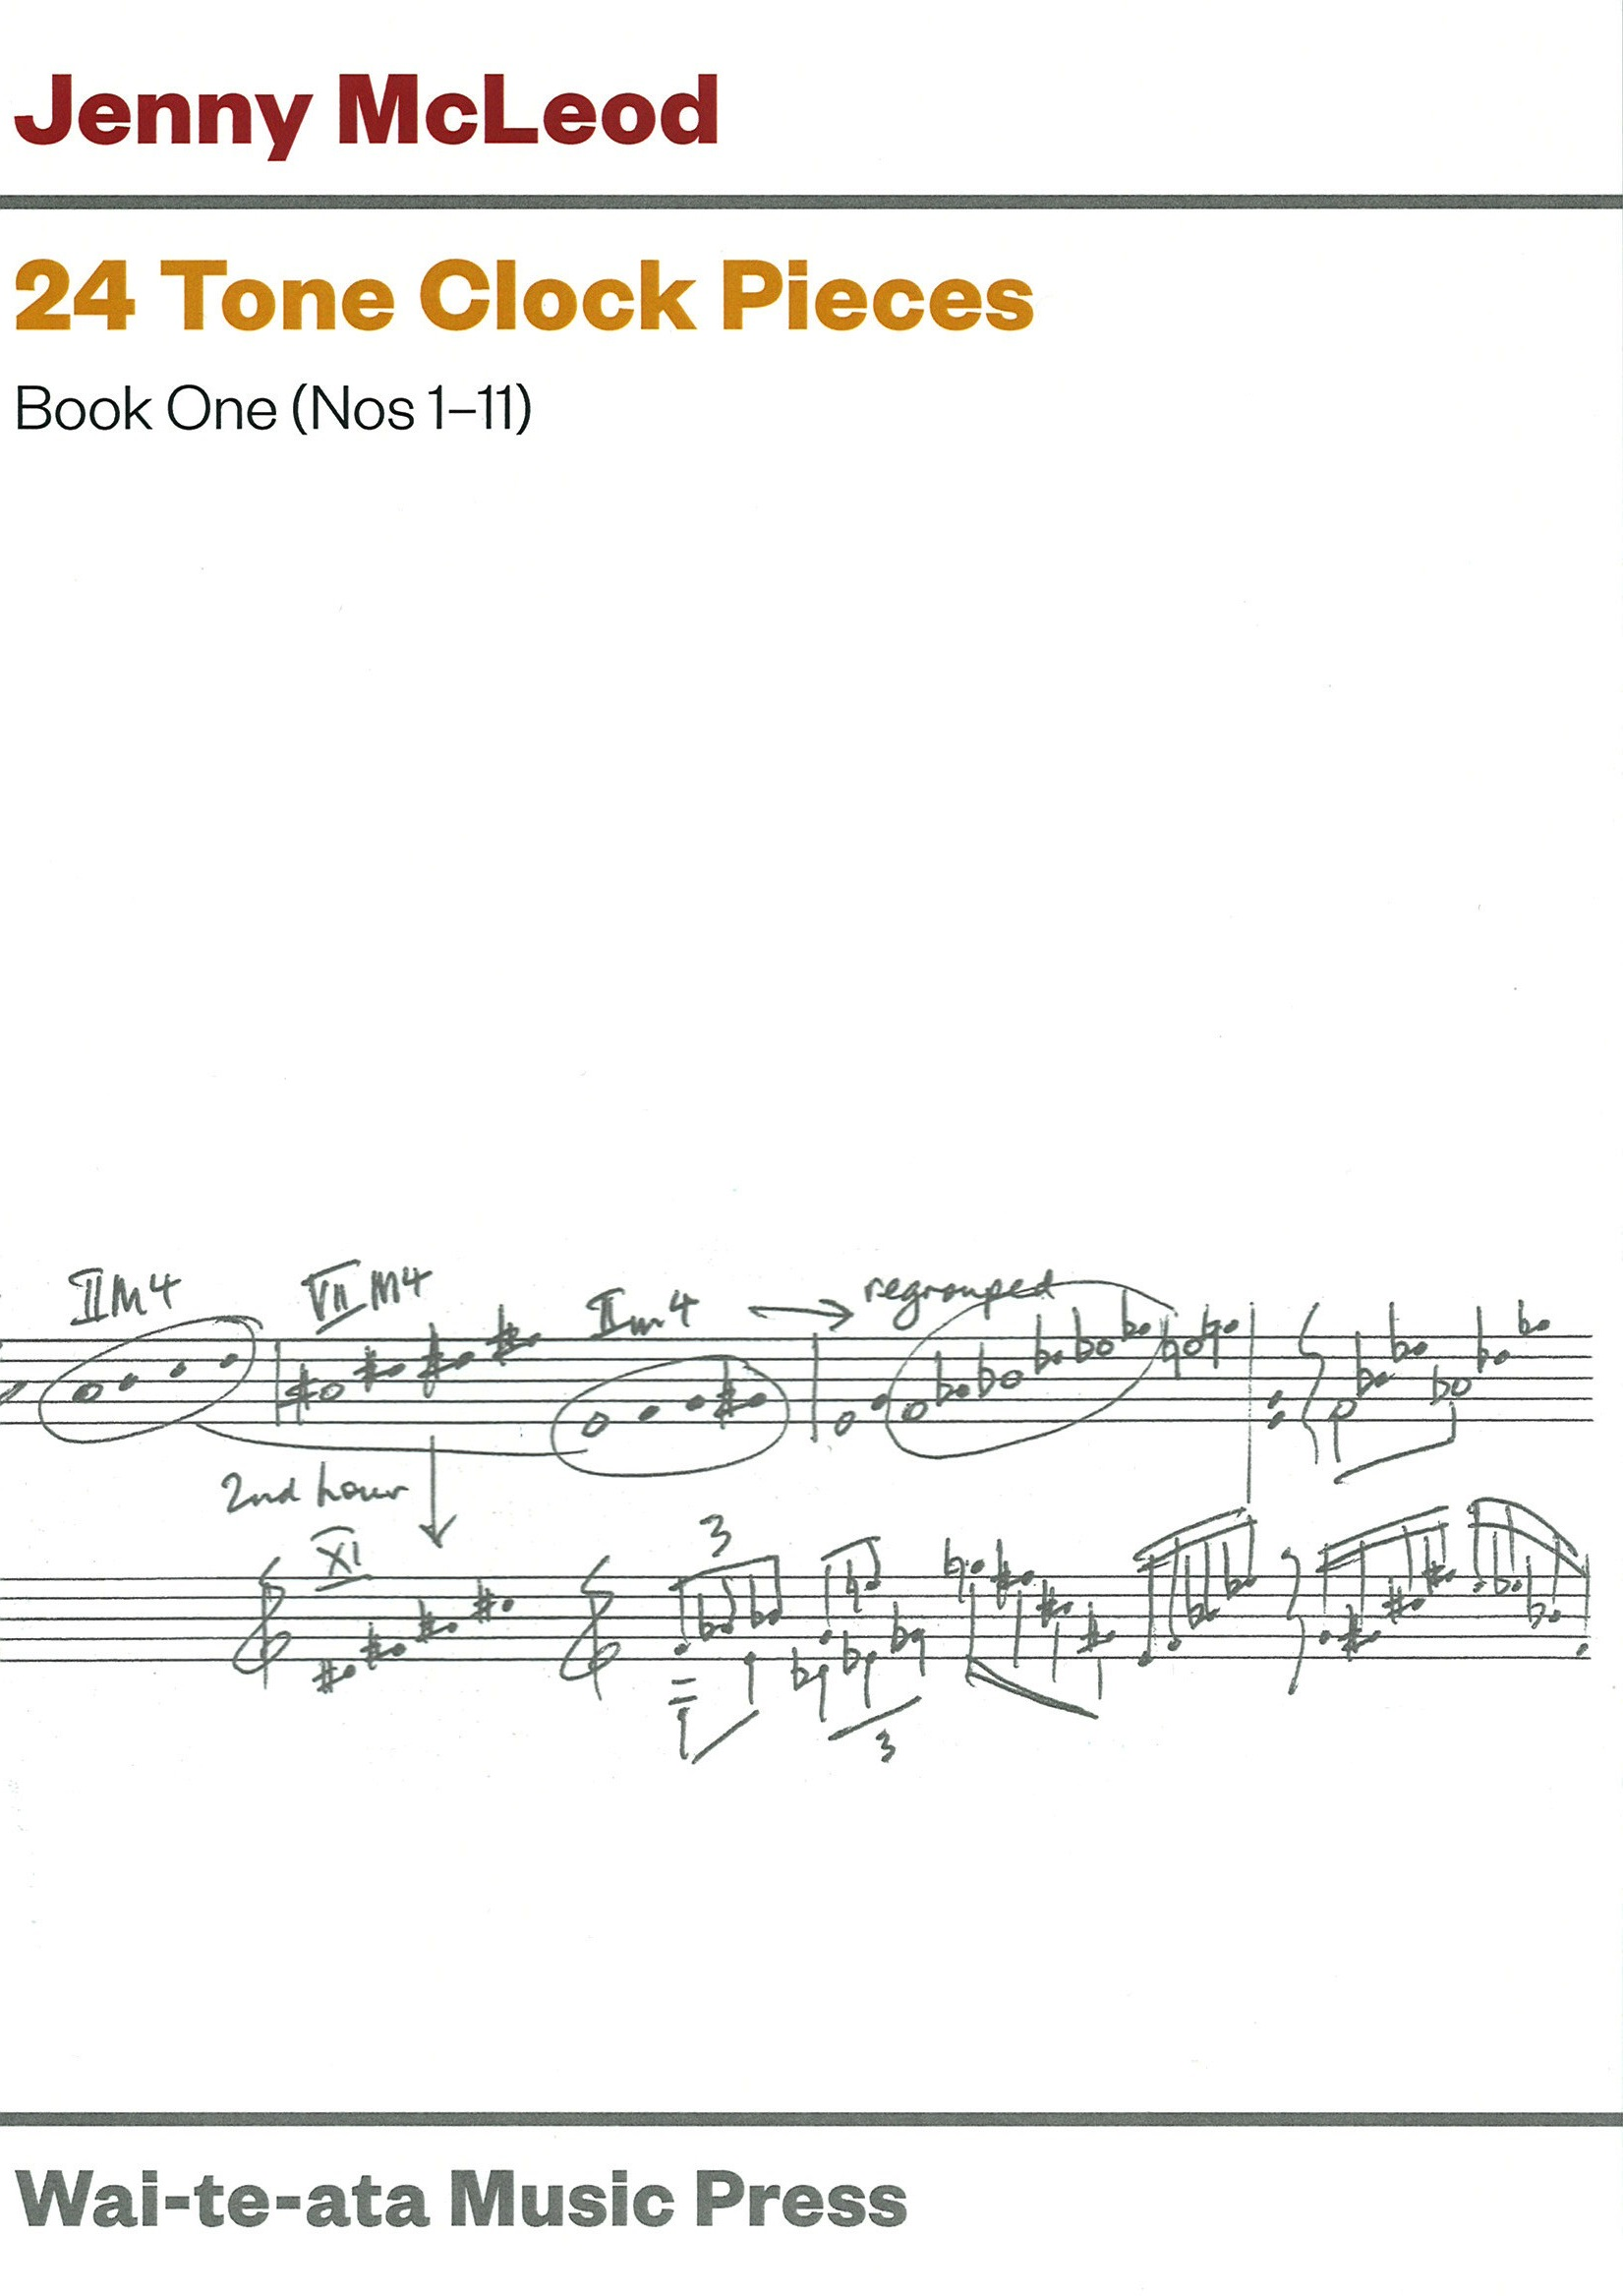 Jenny McLeod: 24 Tone Clock Pieces - Book One (Nos 1-11) - hardcopy SCORE